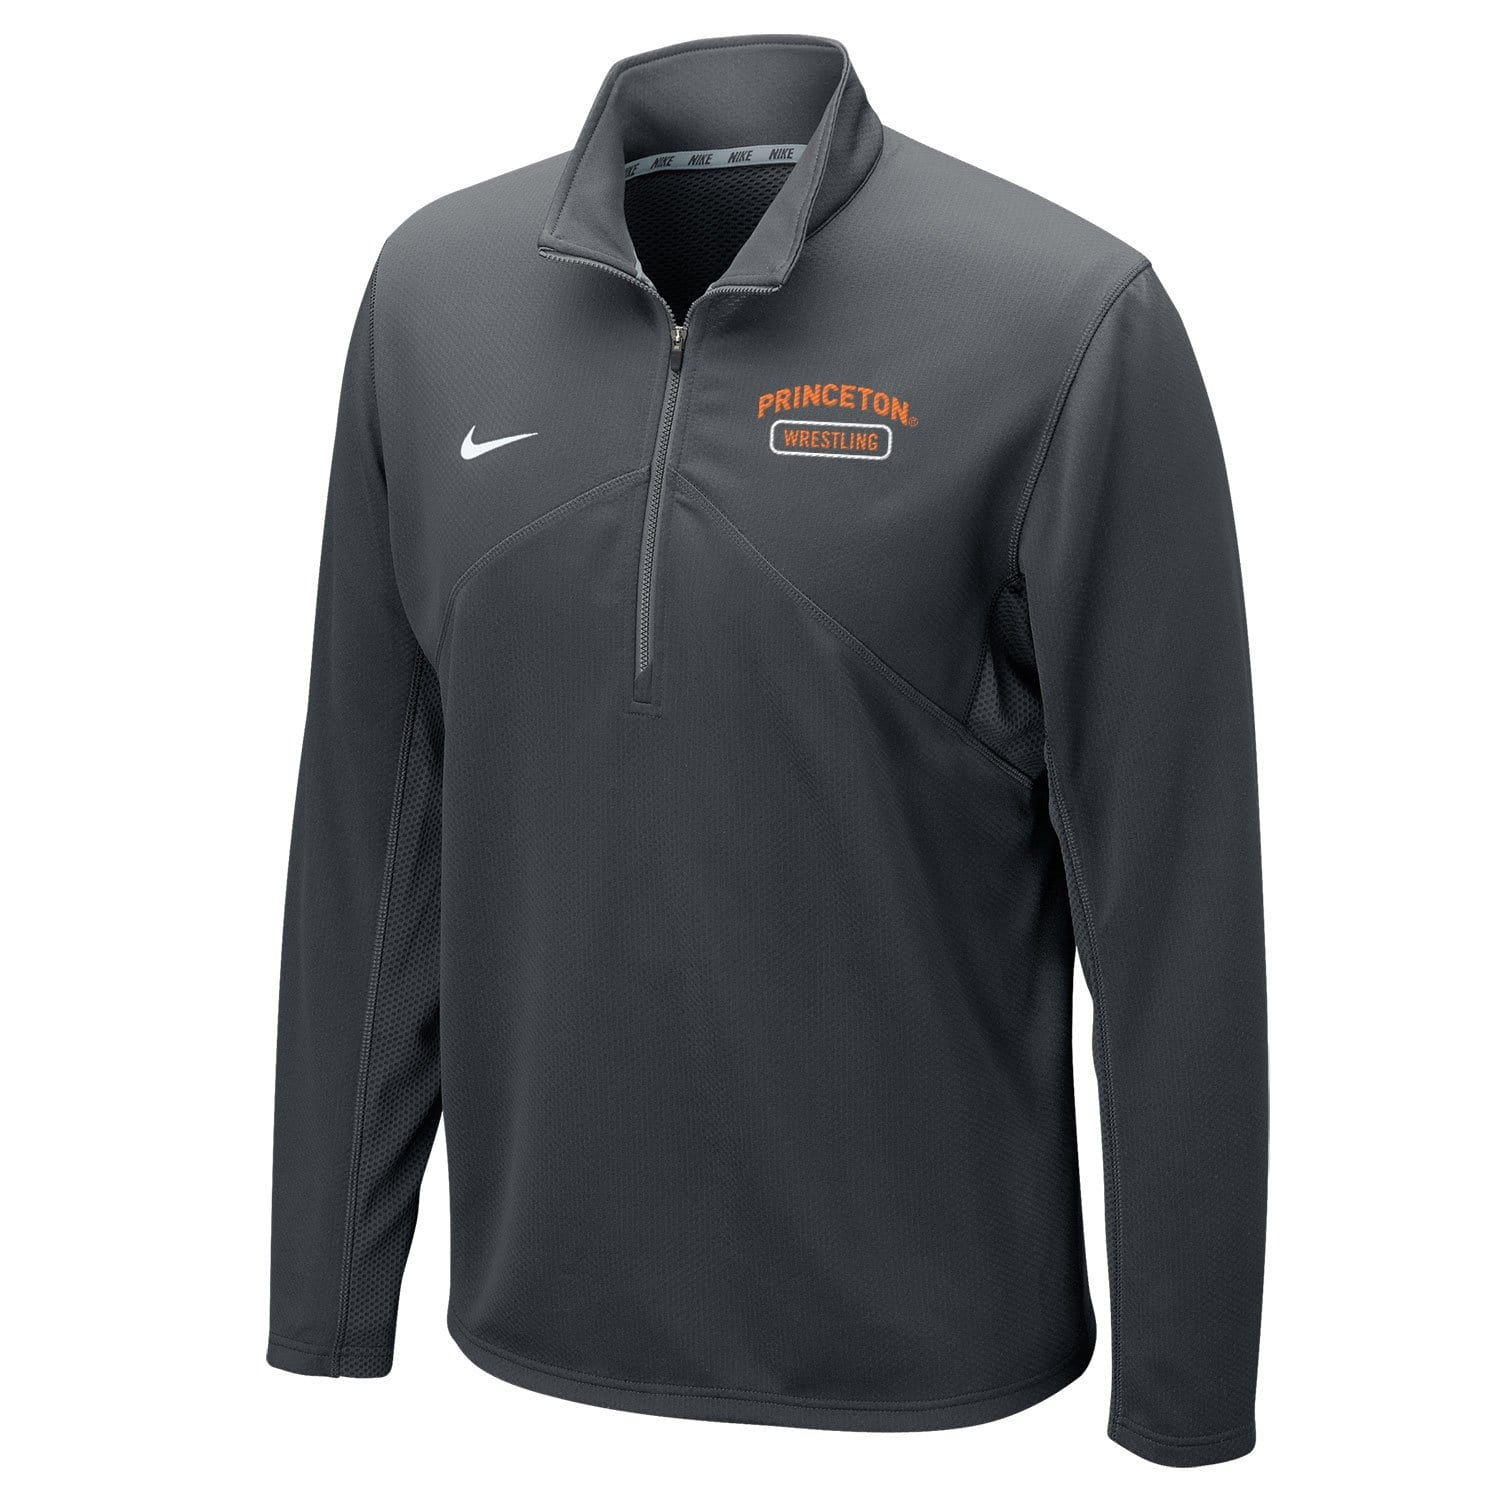 bd9e67eea Princeton - Nike - Wrestling - DRI-FIT - 1/4 Zip | The Princeton ...